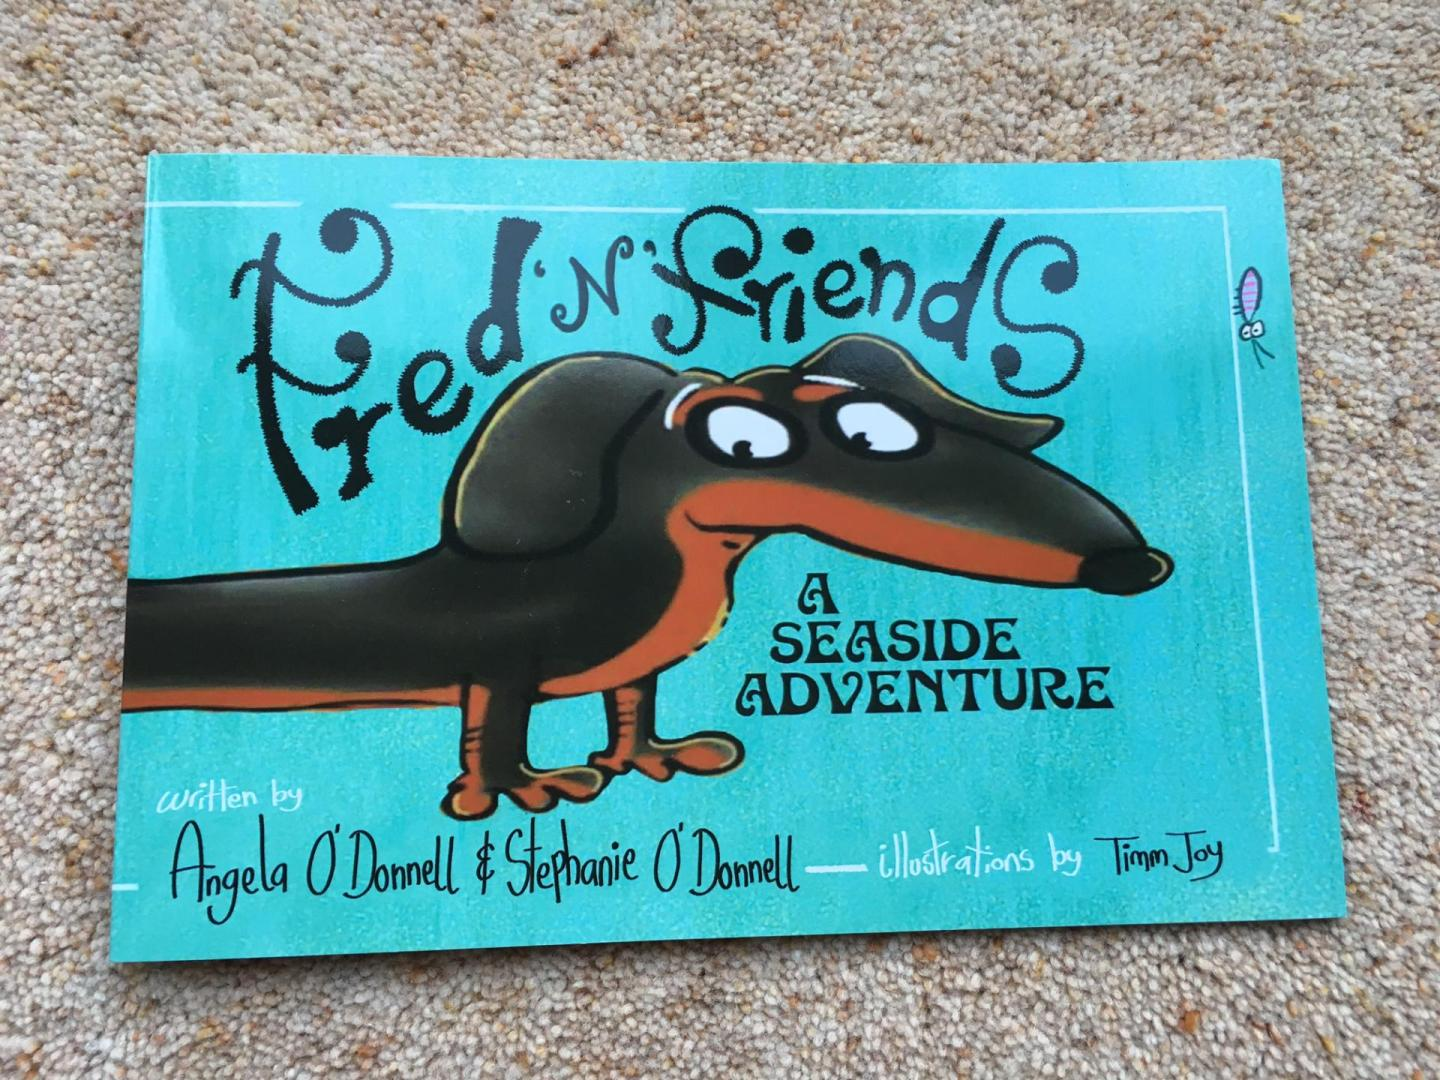 Fred 'n' Friends Book – REVIEW